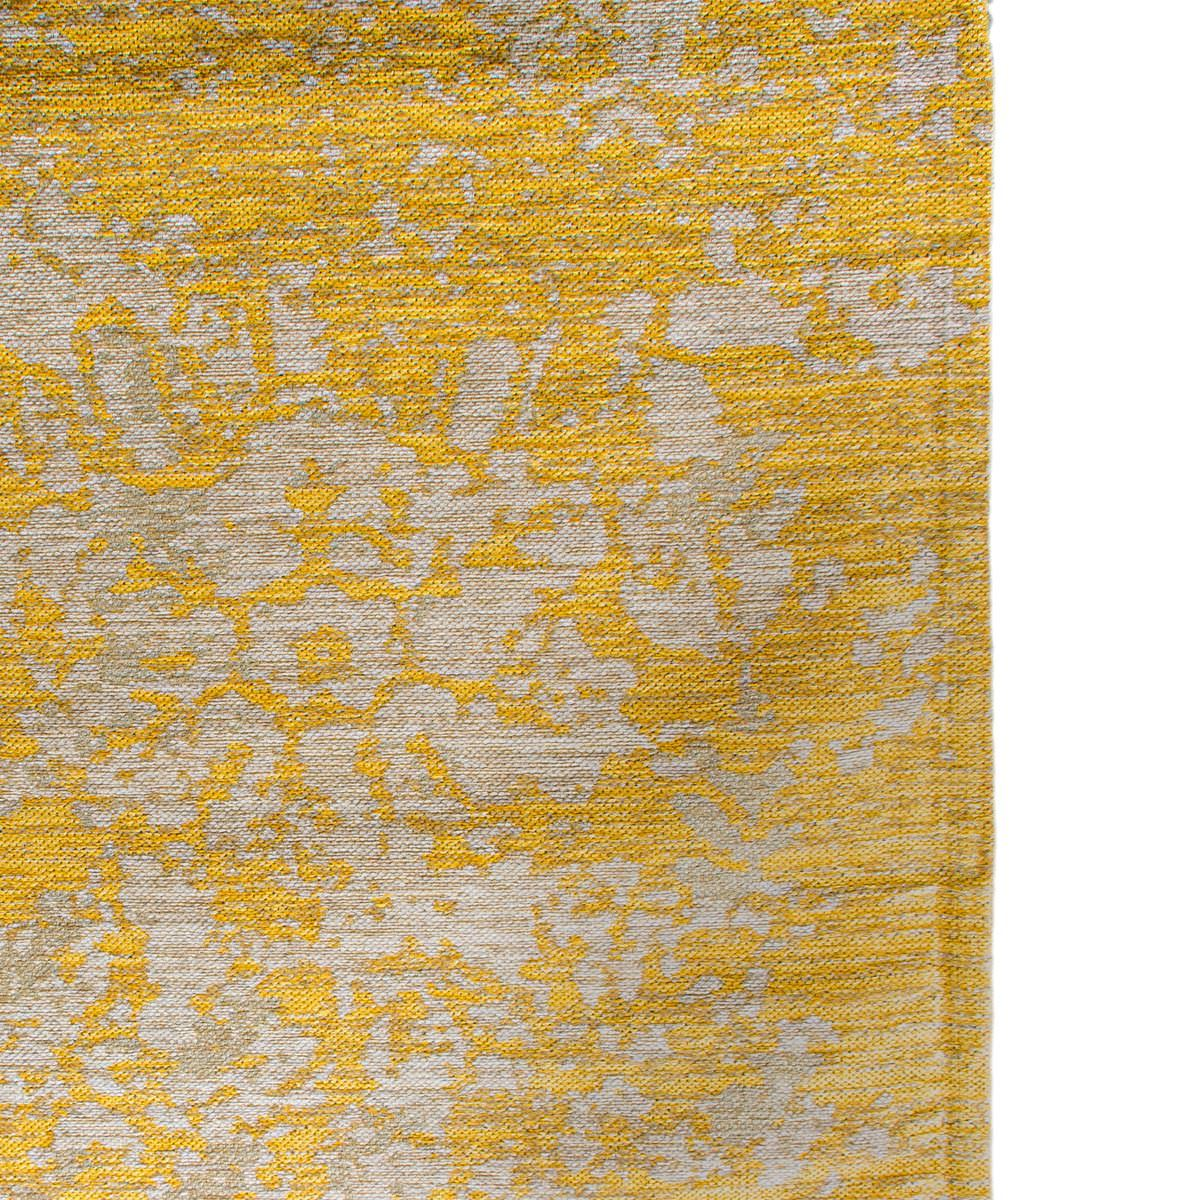 Marseille Rug 29 Yellow/Grey Runner 5